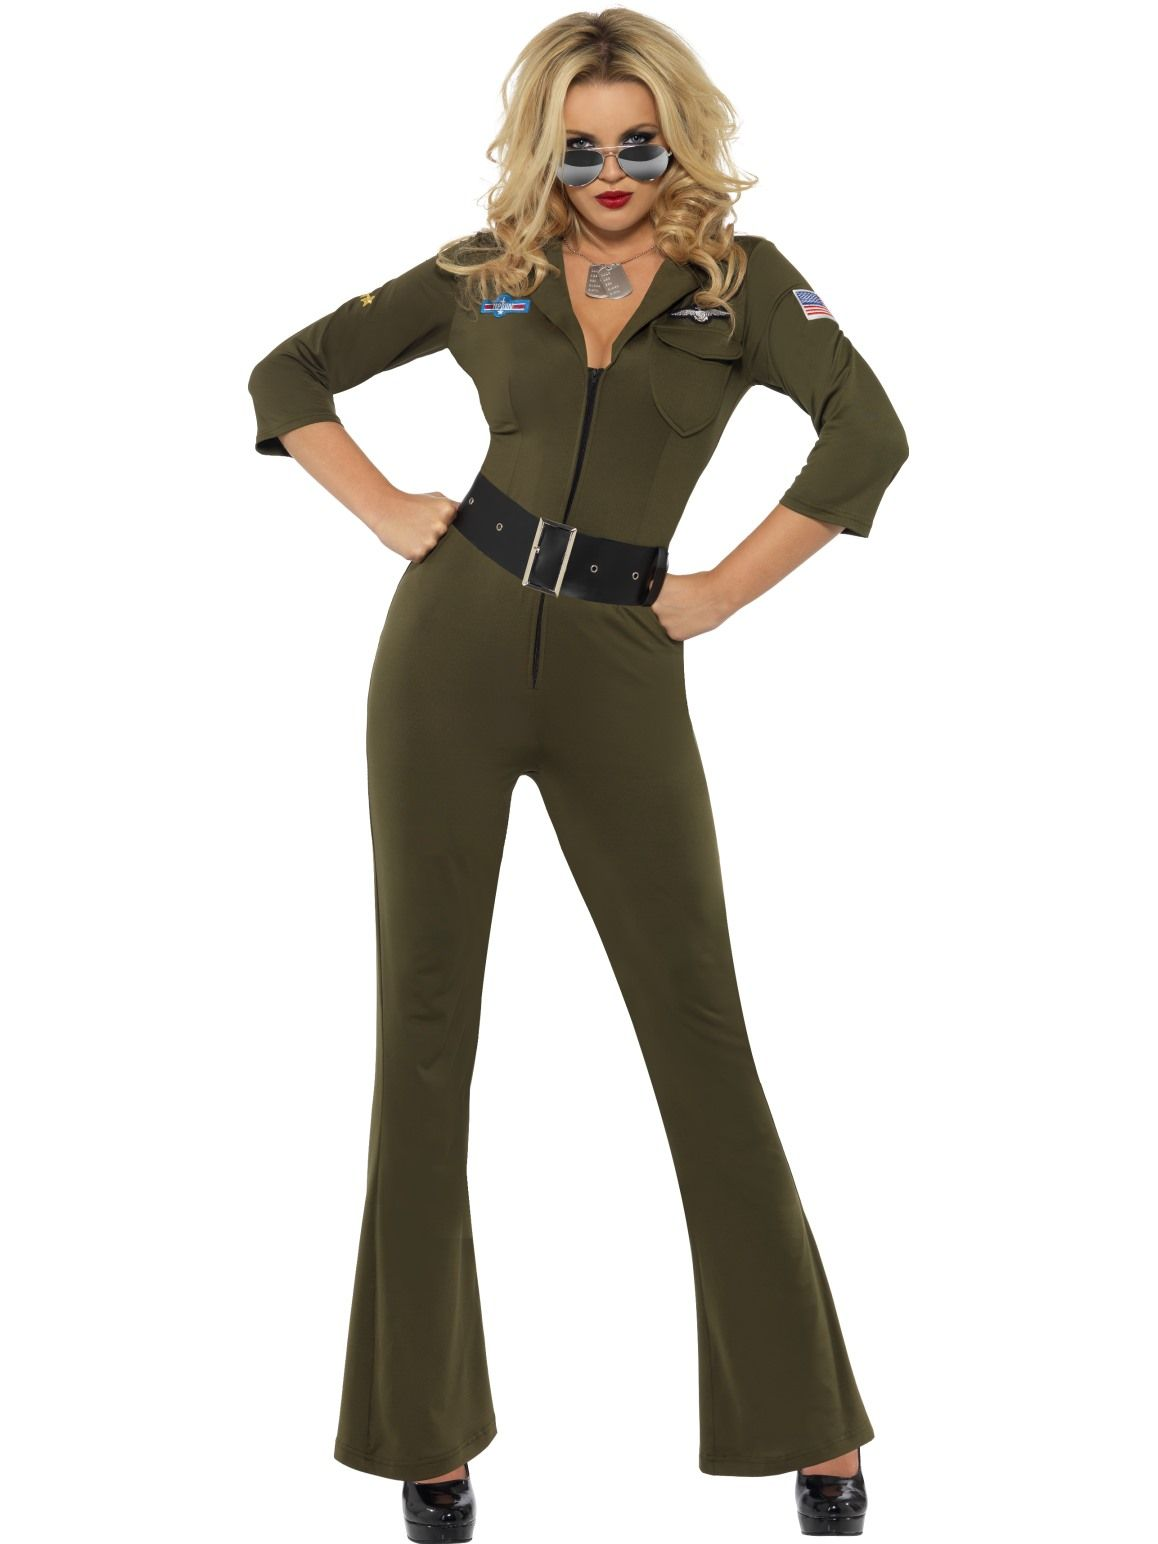 Top Gun Aviator Costume - Buy Online Only